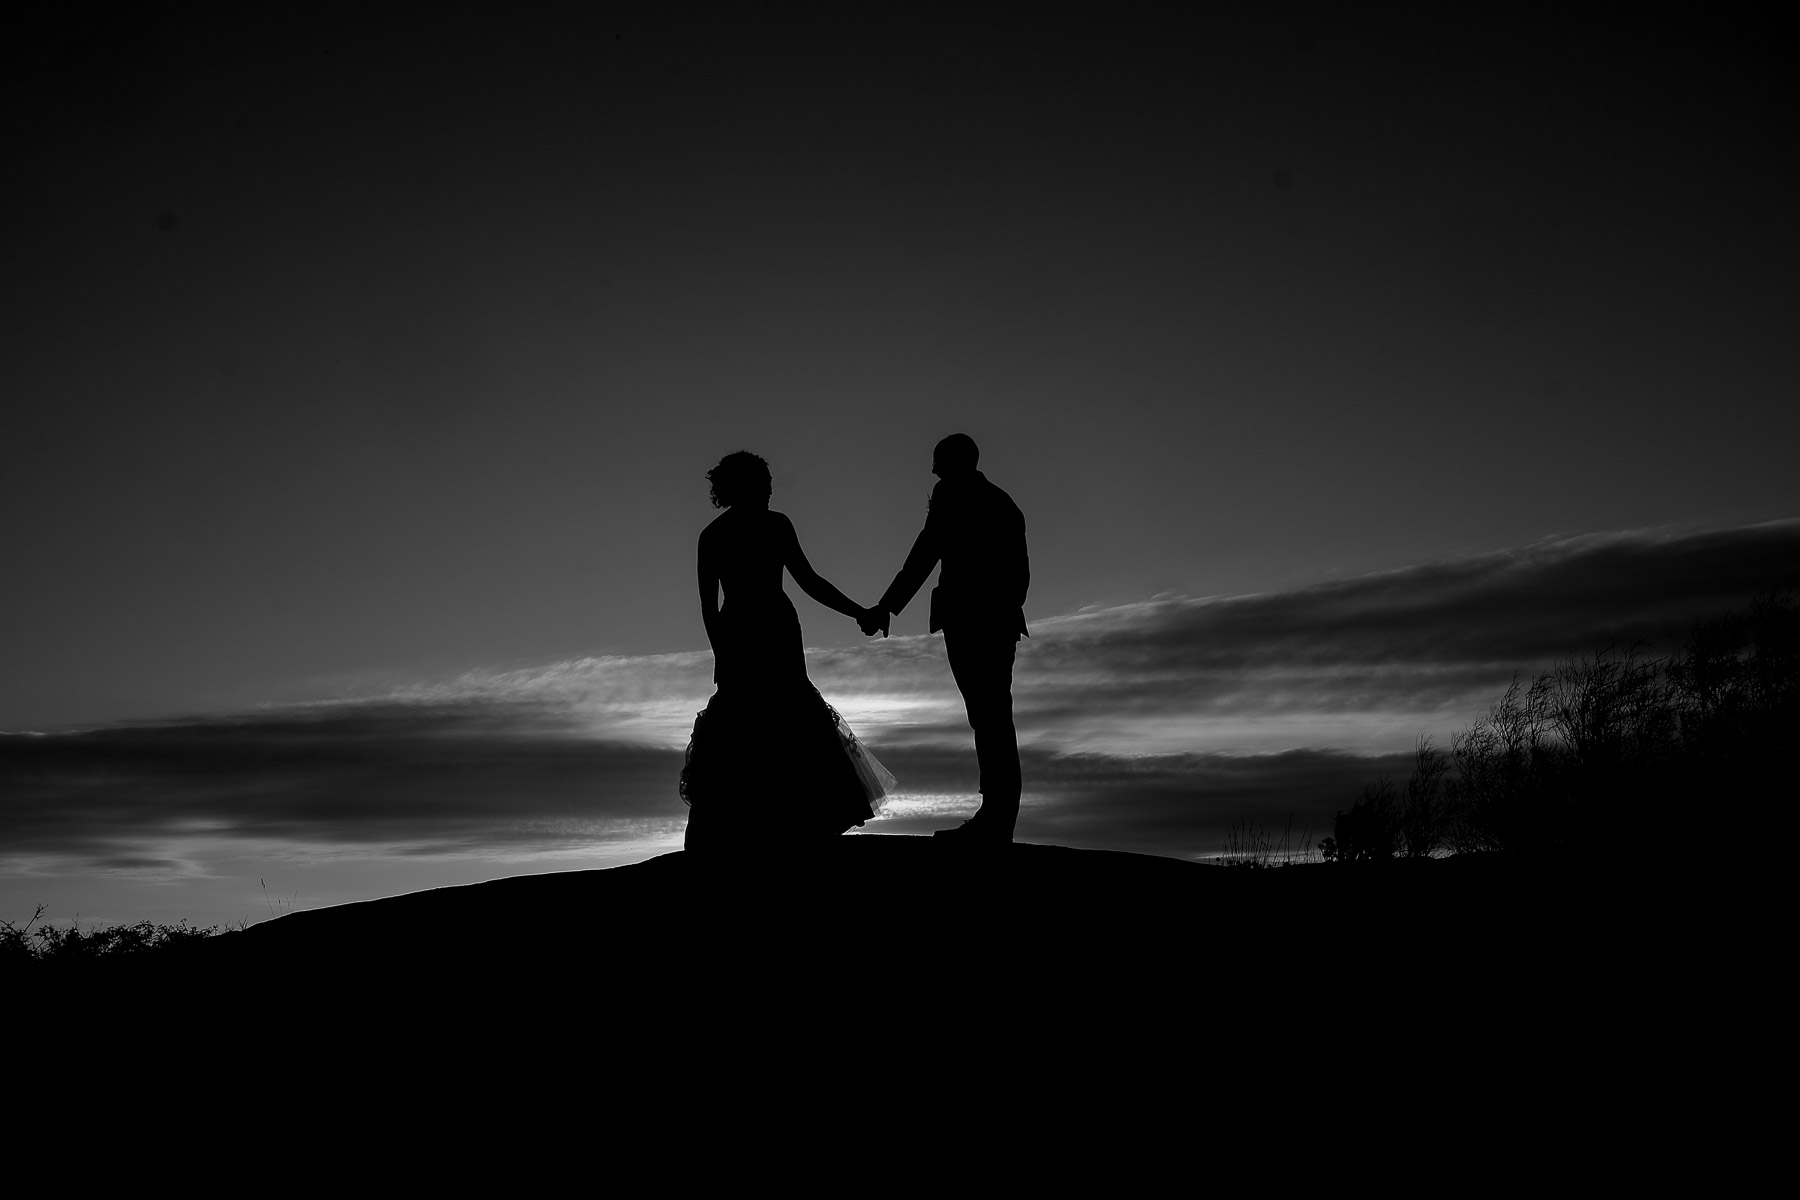 Click to enlarge image ina&peter-furholmen-ottossonphoto-1034.jpg